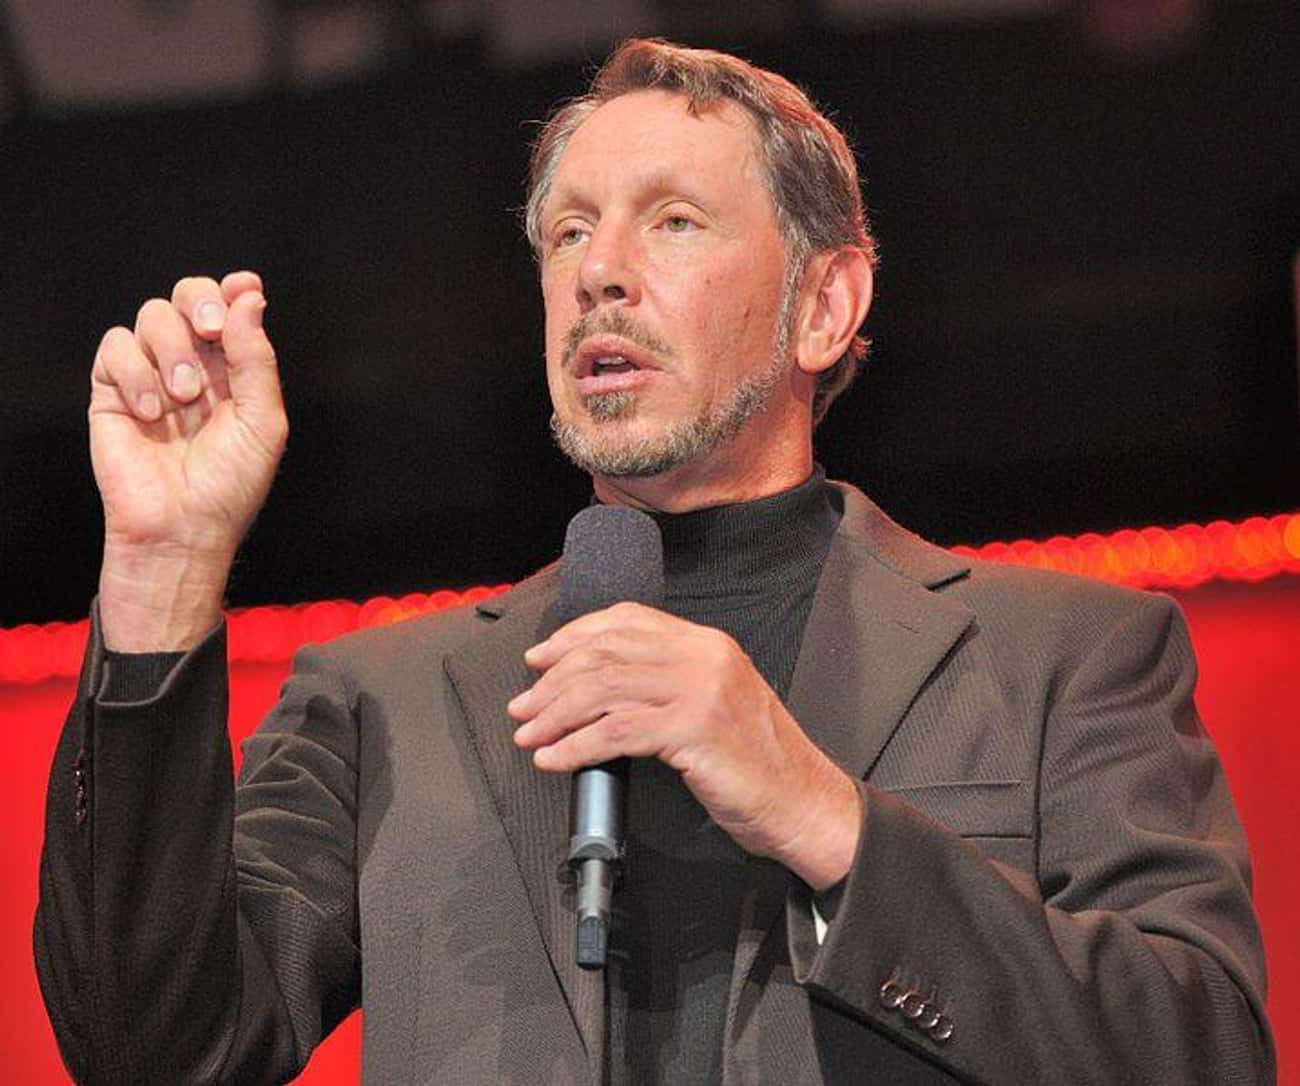 Larry Ellison Has A Speedboat  is listed (or ranked) 2 on the list 15 Ridiculous Jobs Celebrities Reportedly Employ People To Do